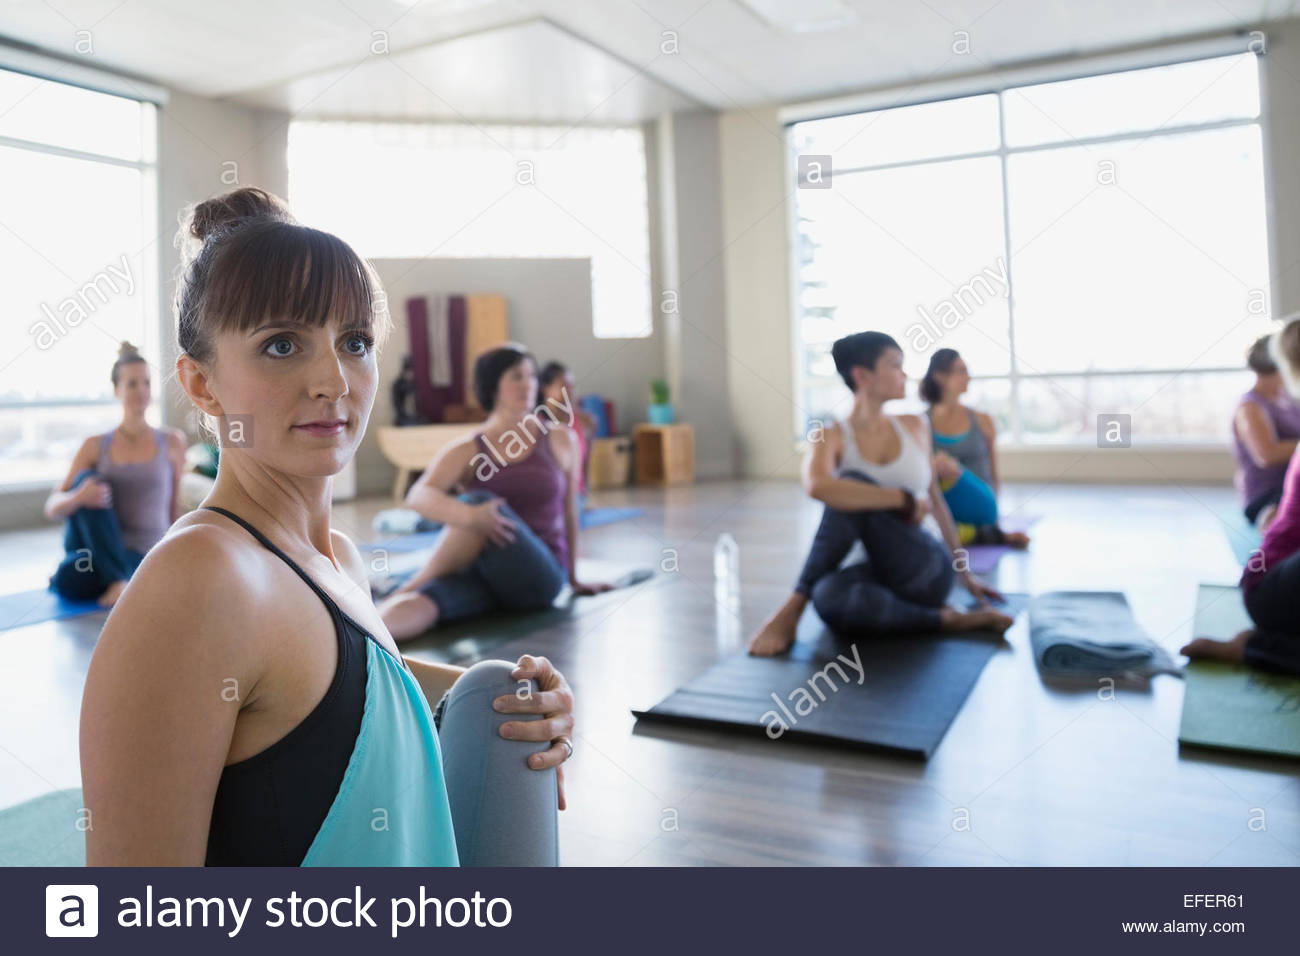 Women practicing seated twist pose in yoga class - Stock Image